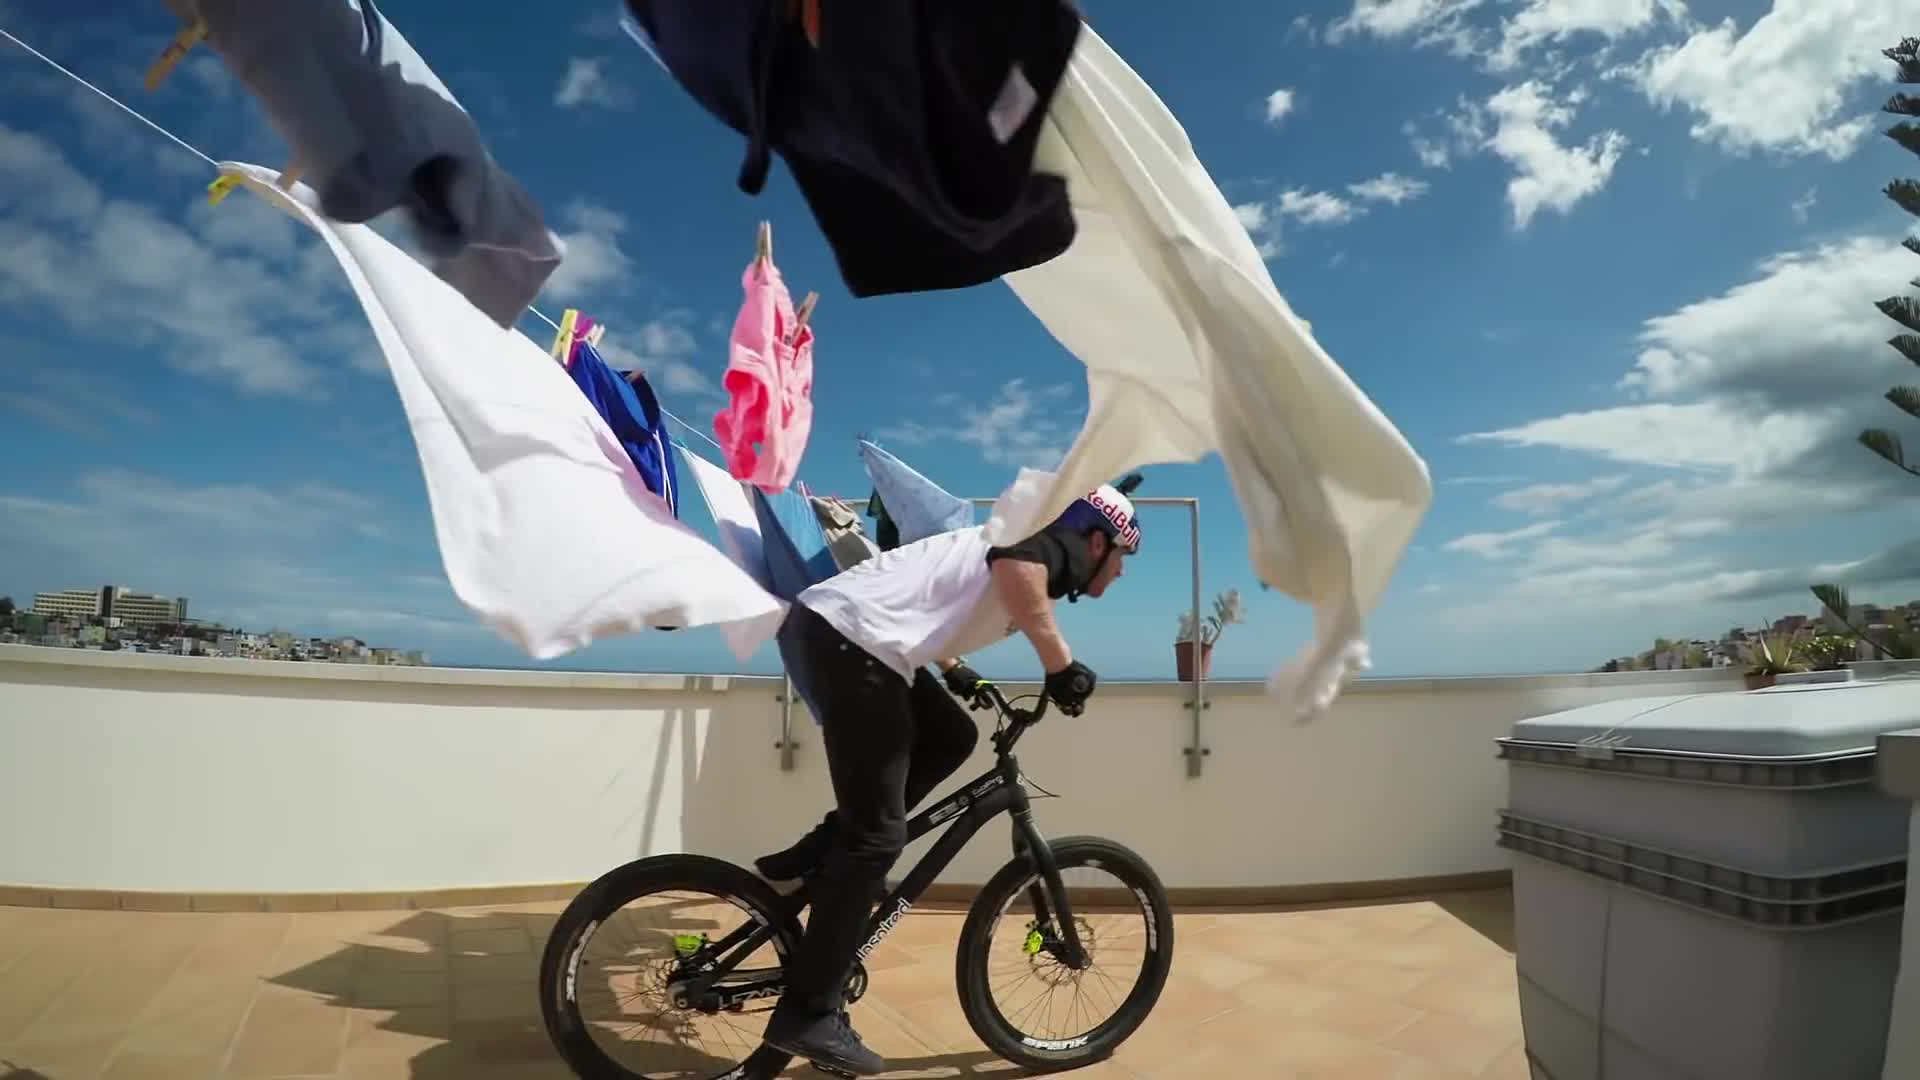 4k, bicycle (product category), bicycle motocross (sport), bike, bmx bike (product category), cycle sport (sport), cycling (interest), danny macaskill (cyclist), gopro, gopro hero 4, hd camera, hero camera, hero2, hero3, hero3plus, hero4, rad, stoked, video, ゴープロ, GoPro: Danny MacAskill - Cascadia GIFs